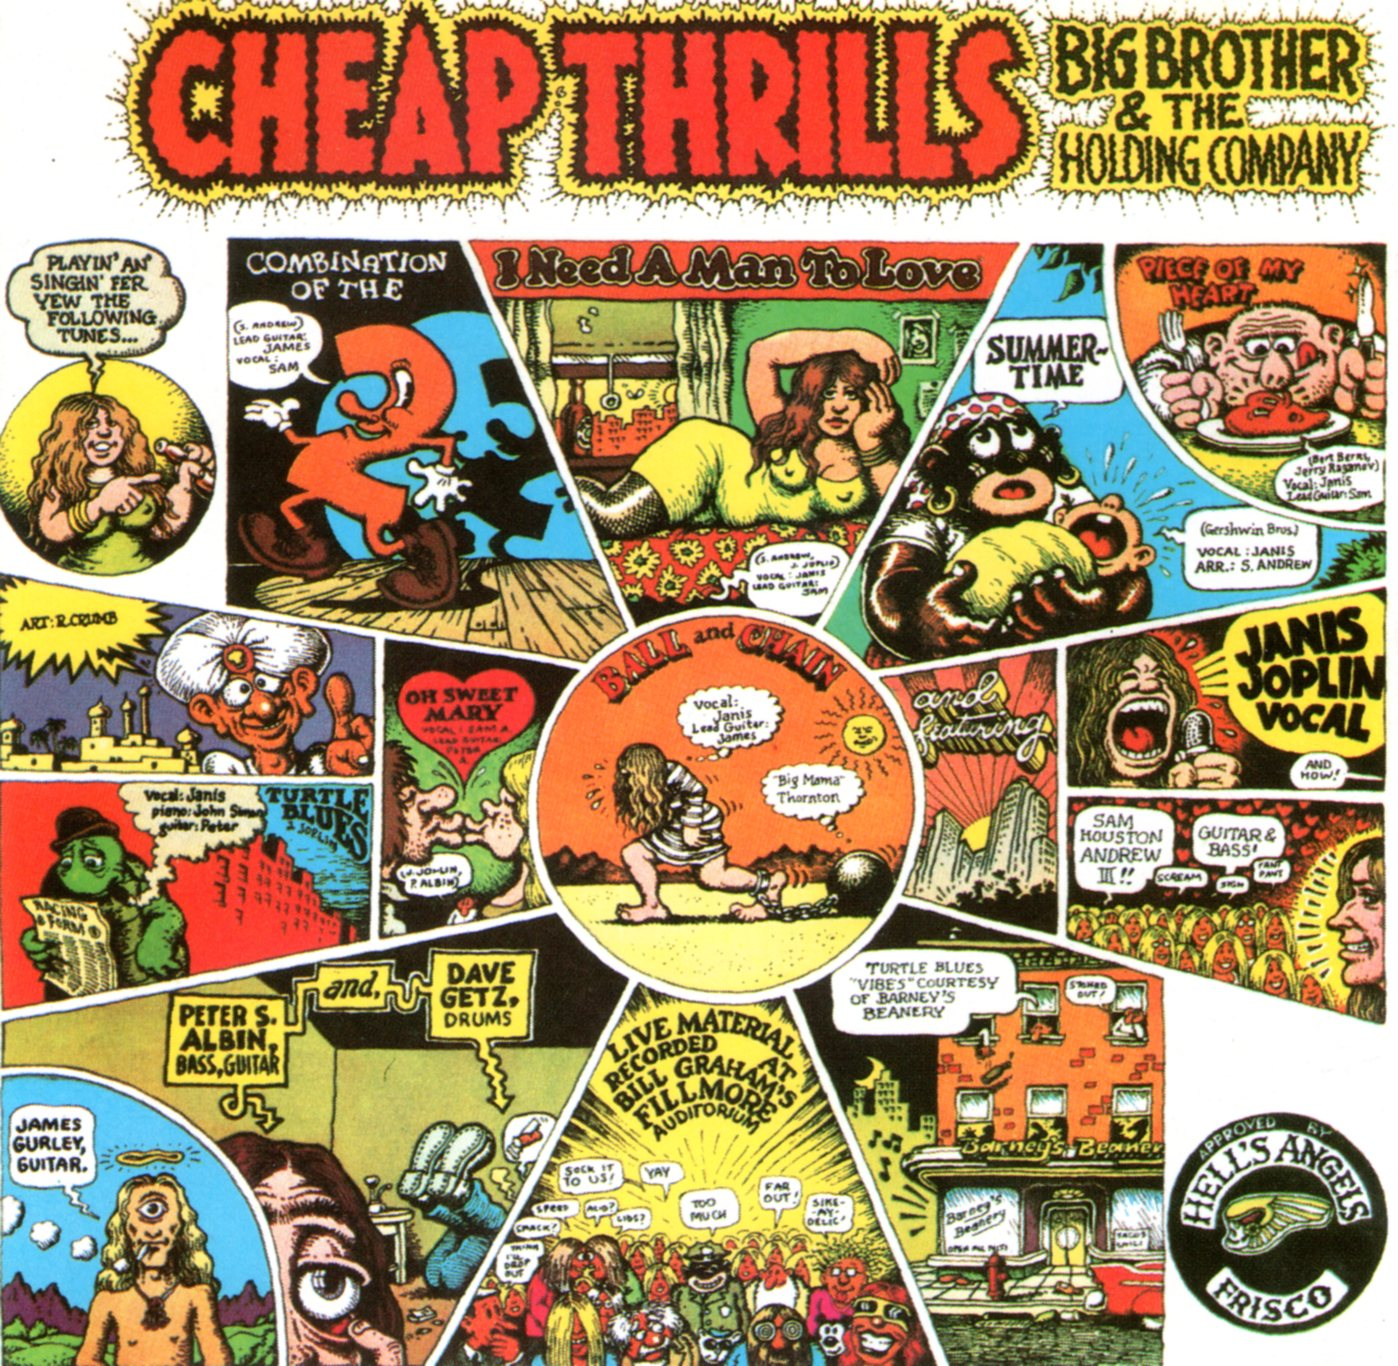 J Joplin - Cheap thrills